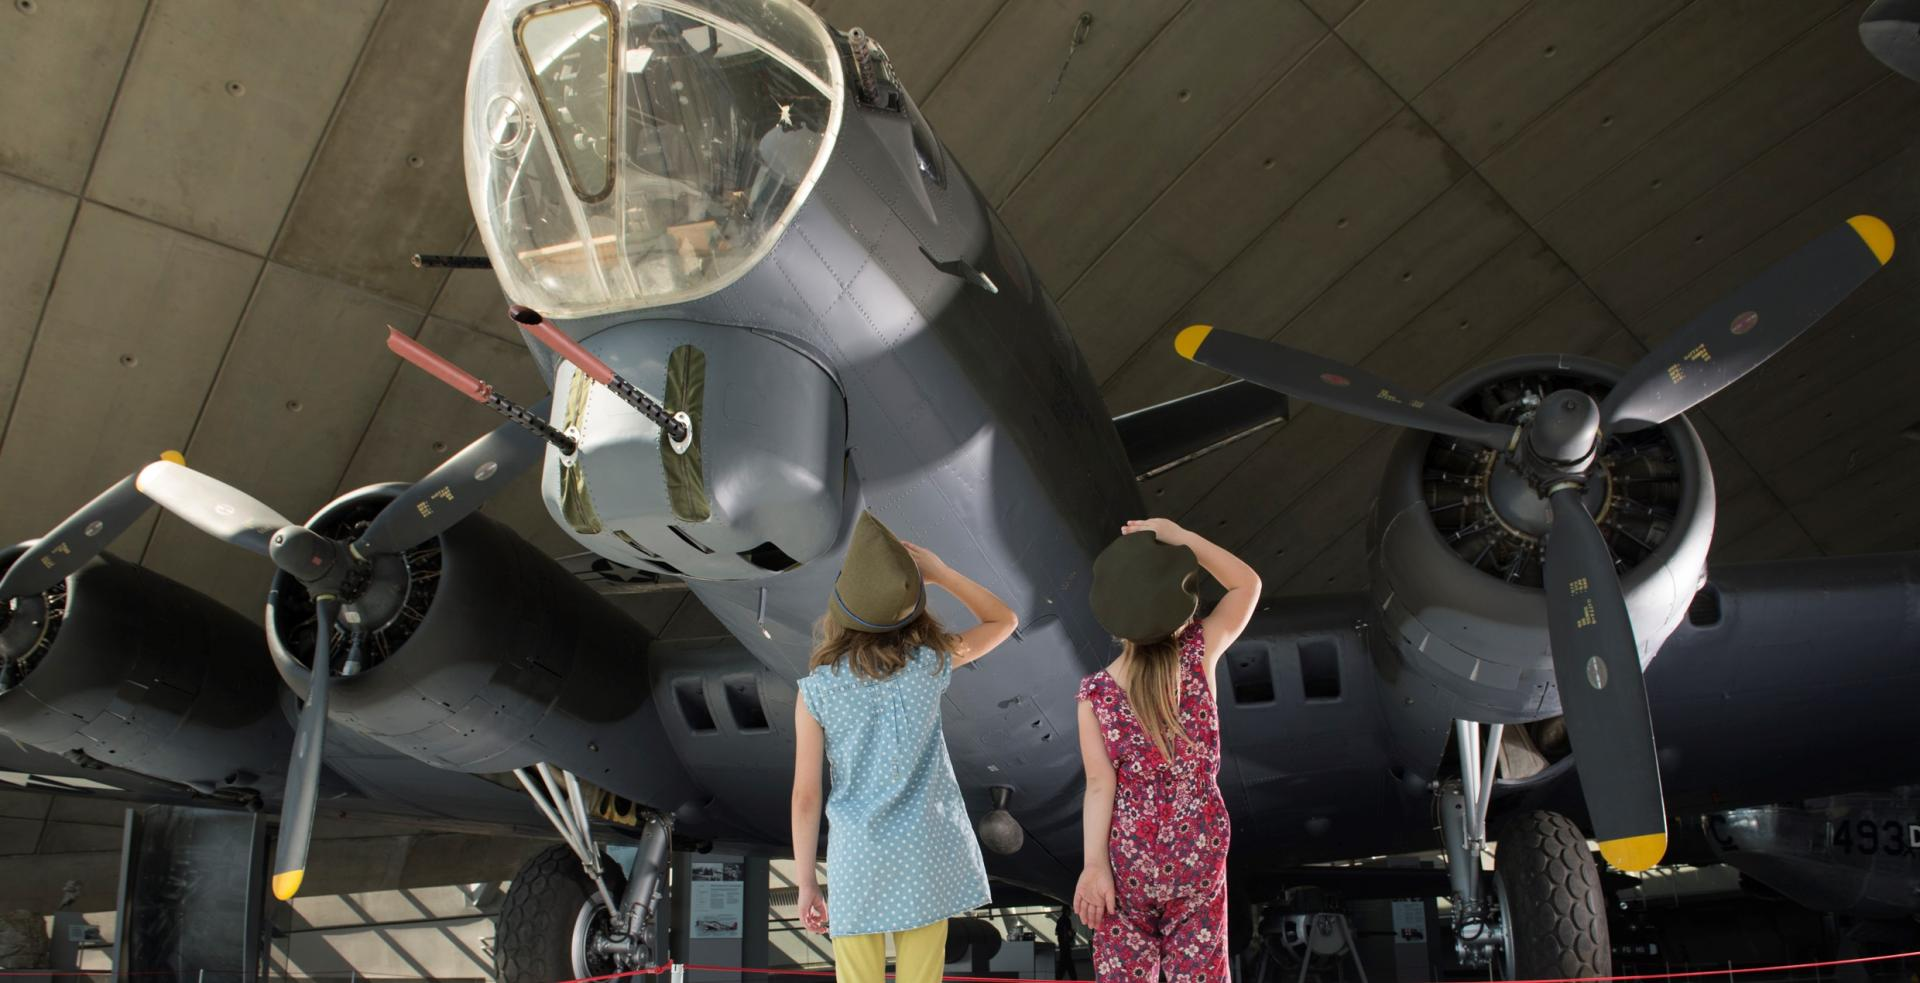 Two young visitors admire aircraft at IWM Duxford